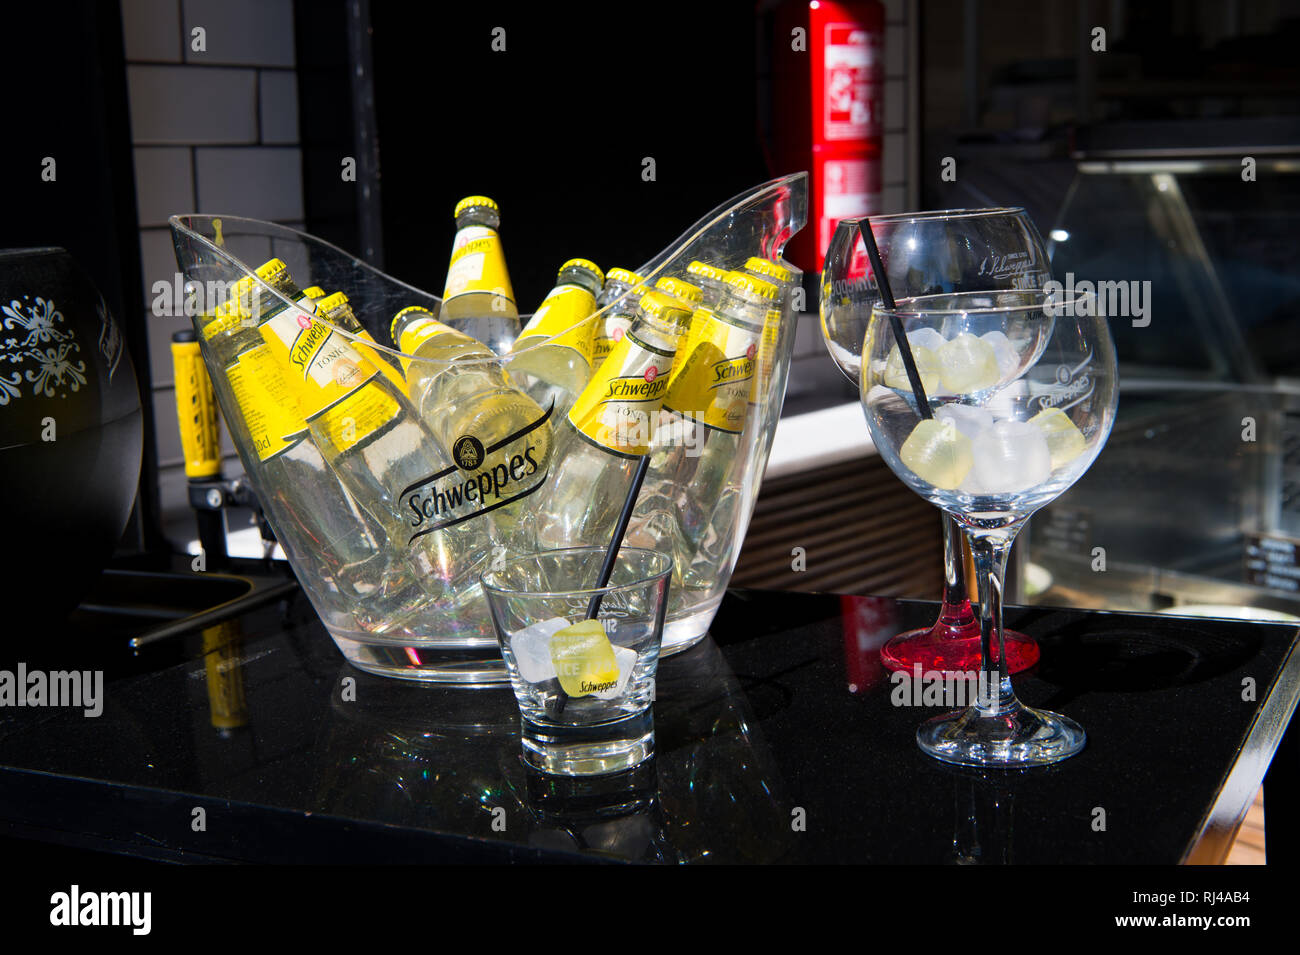 Key west, Fl, USA - March 30, 2016: Schweppes Tonic Water bottles yellow color in glass with cold ice cubes on table near bocals of lemon beverage with drinking straw - Stock Image